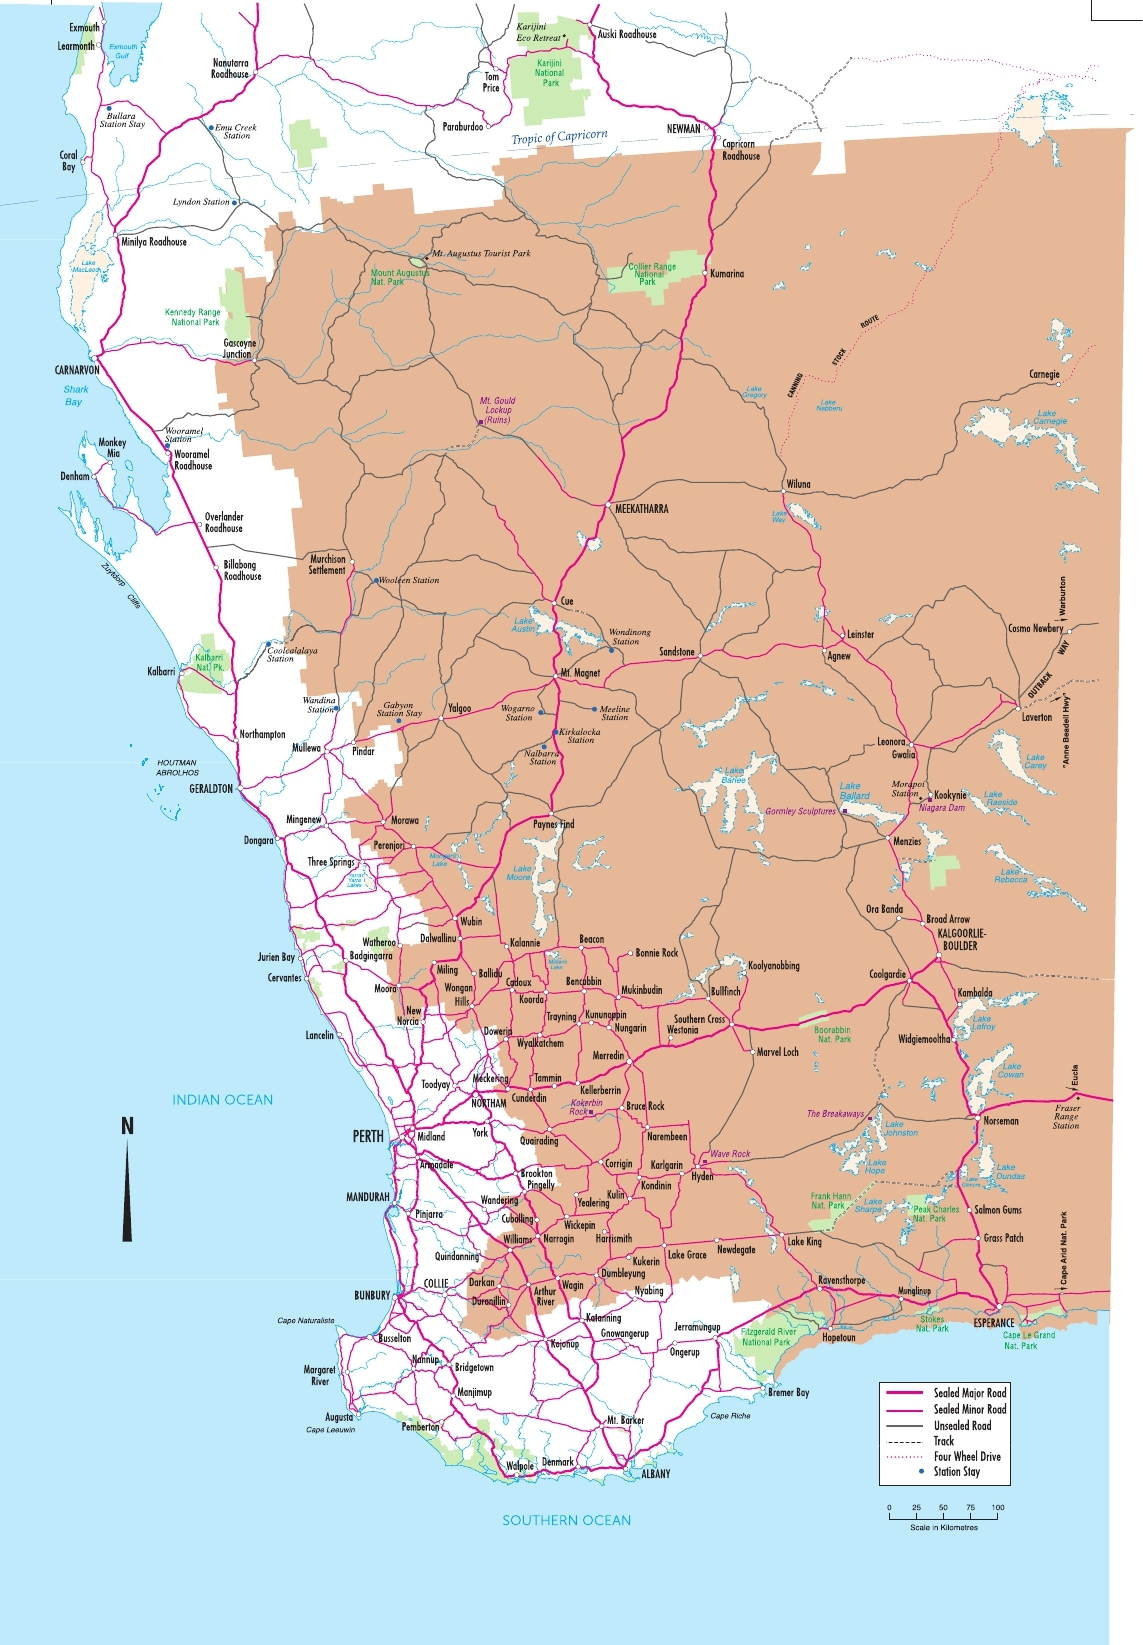 Map Of Western Australia With Towns.Maps Of The Golden Outback Australias Golden Outback